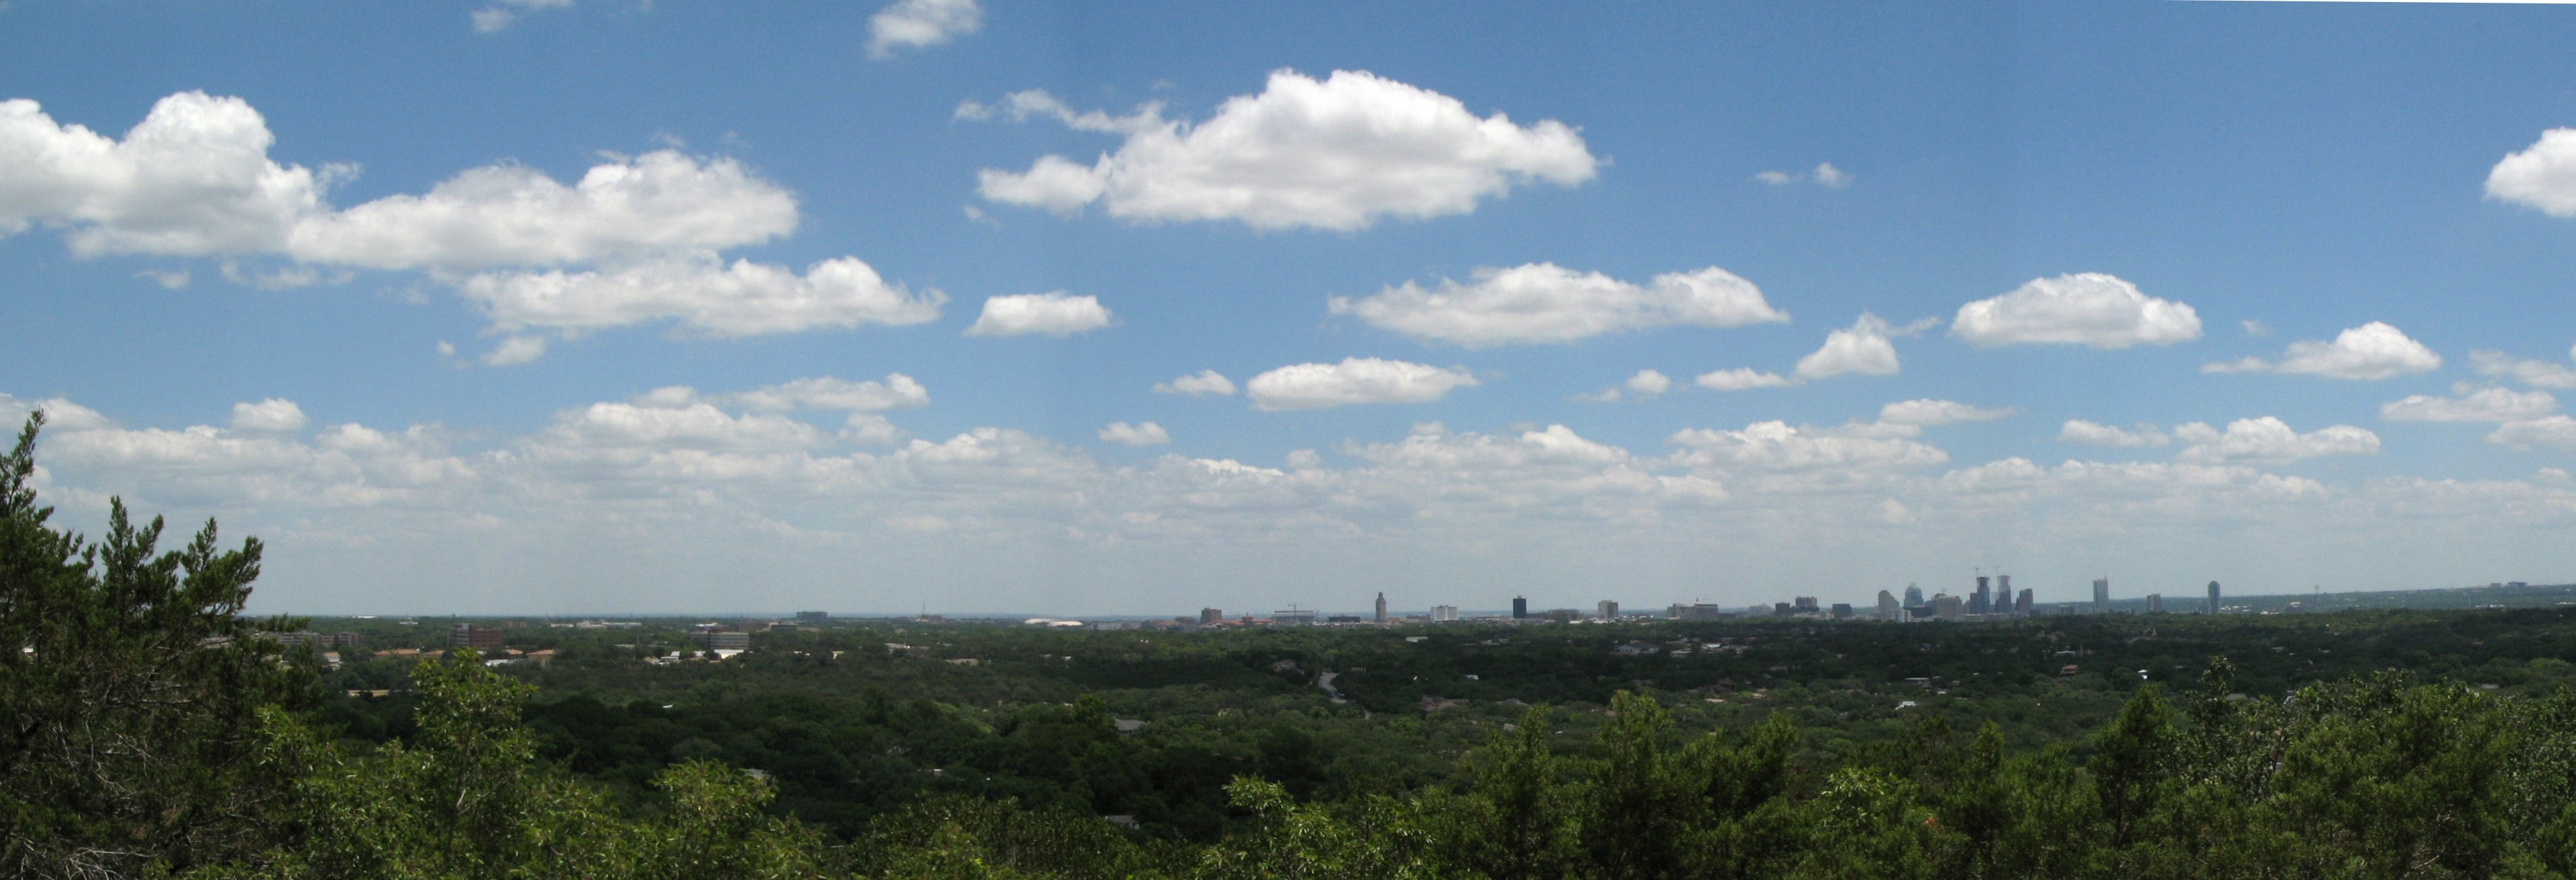 Panoramic view of Austin looking east off Mount Bonnell